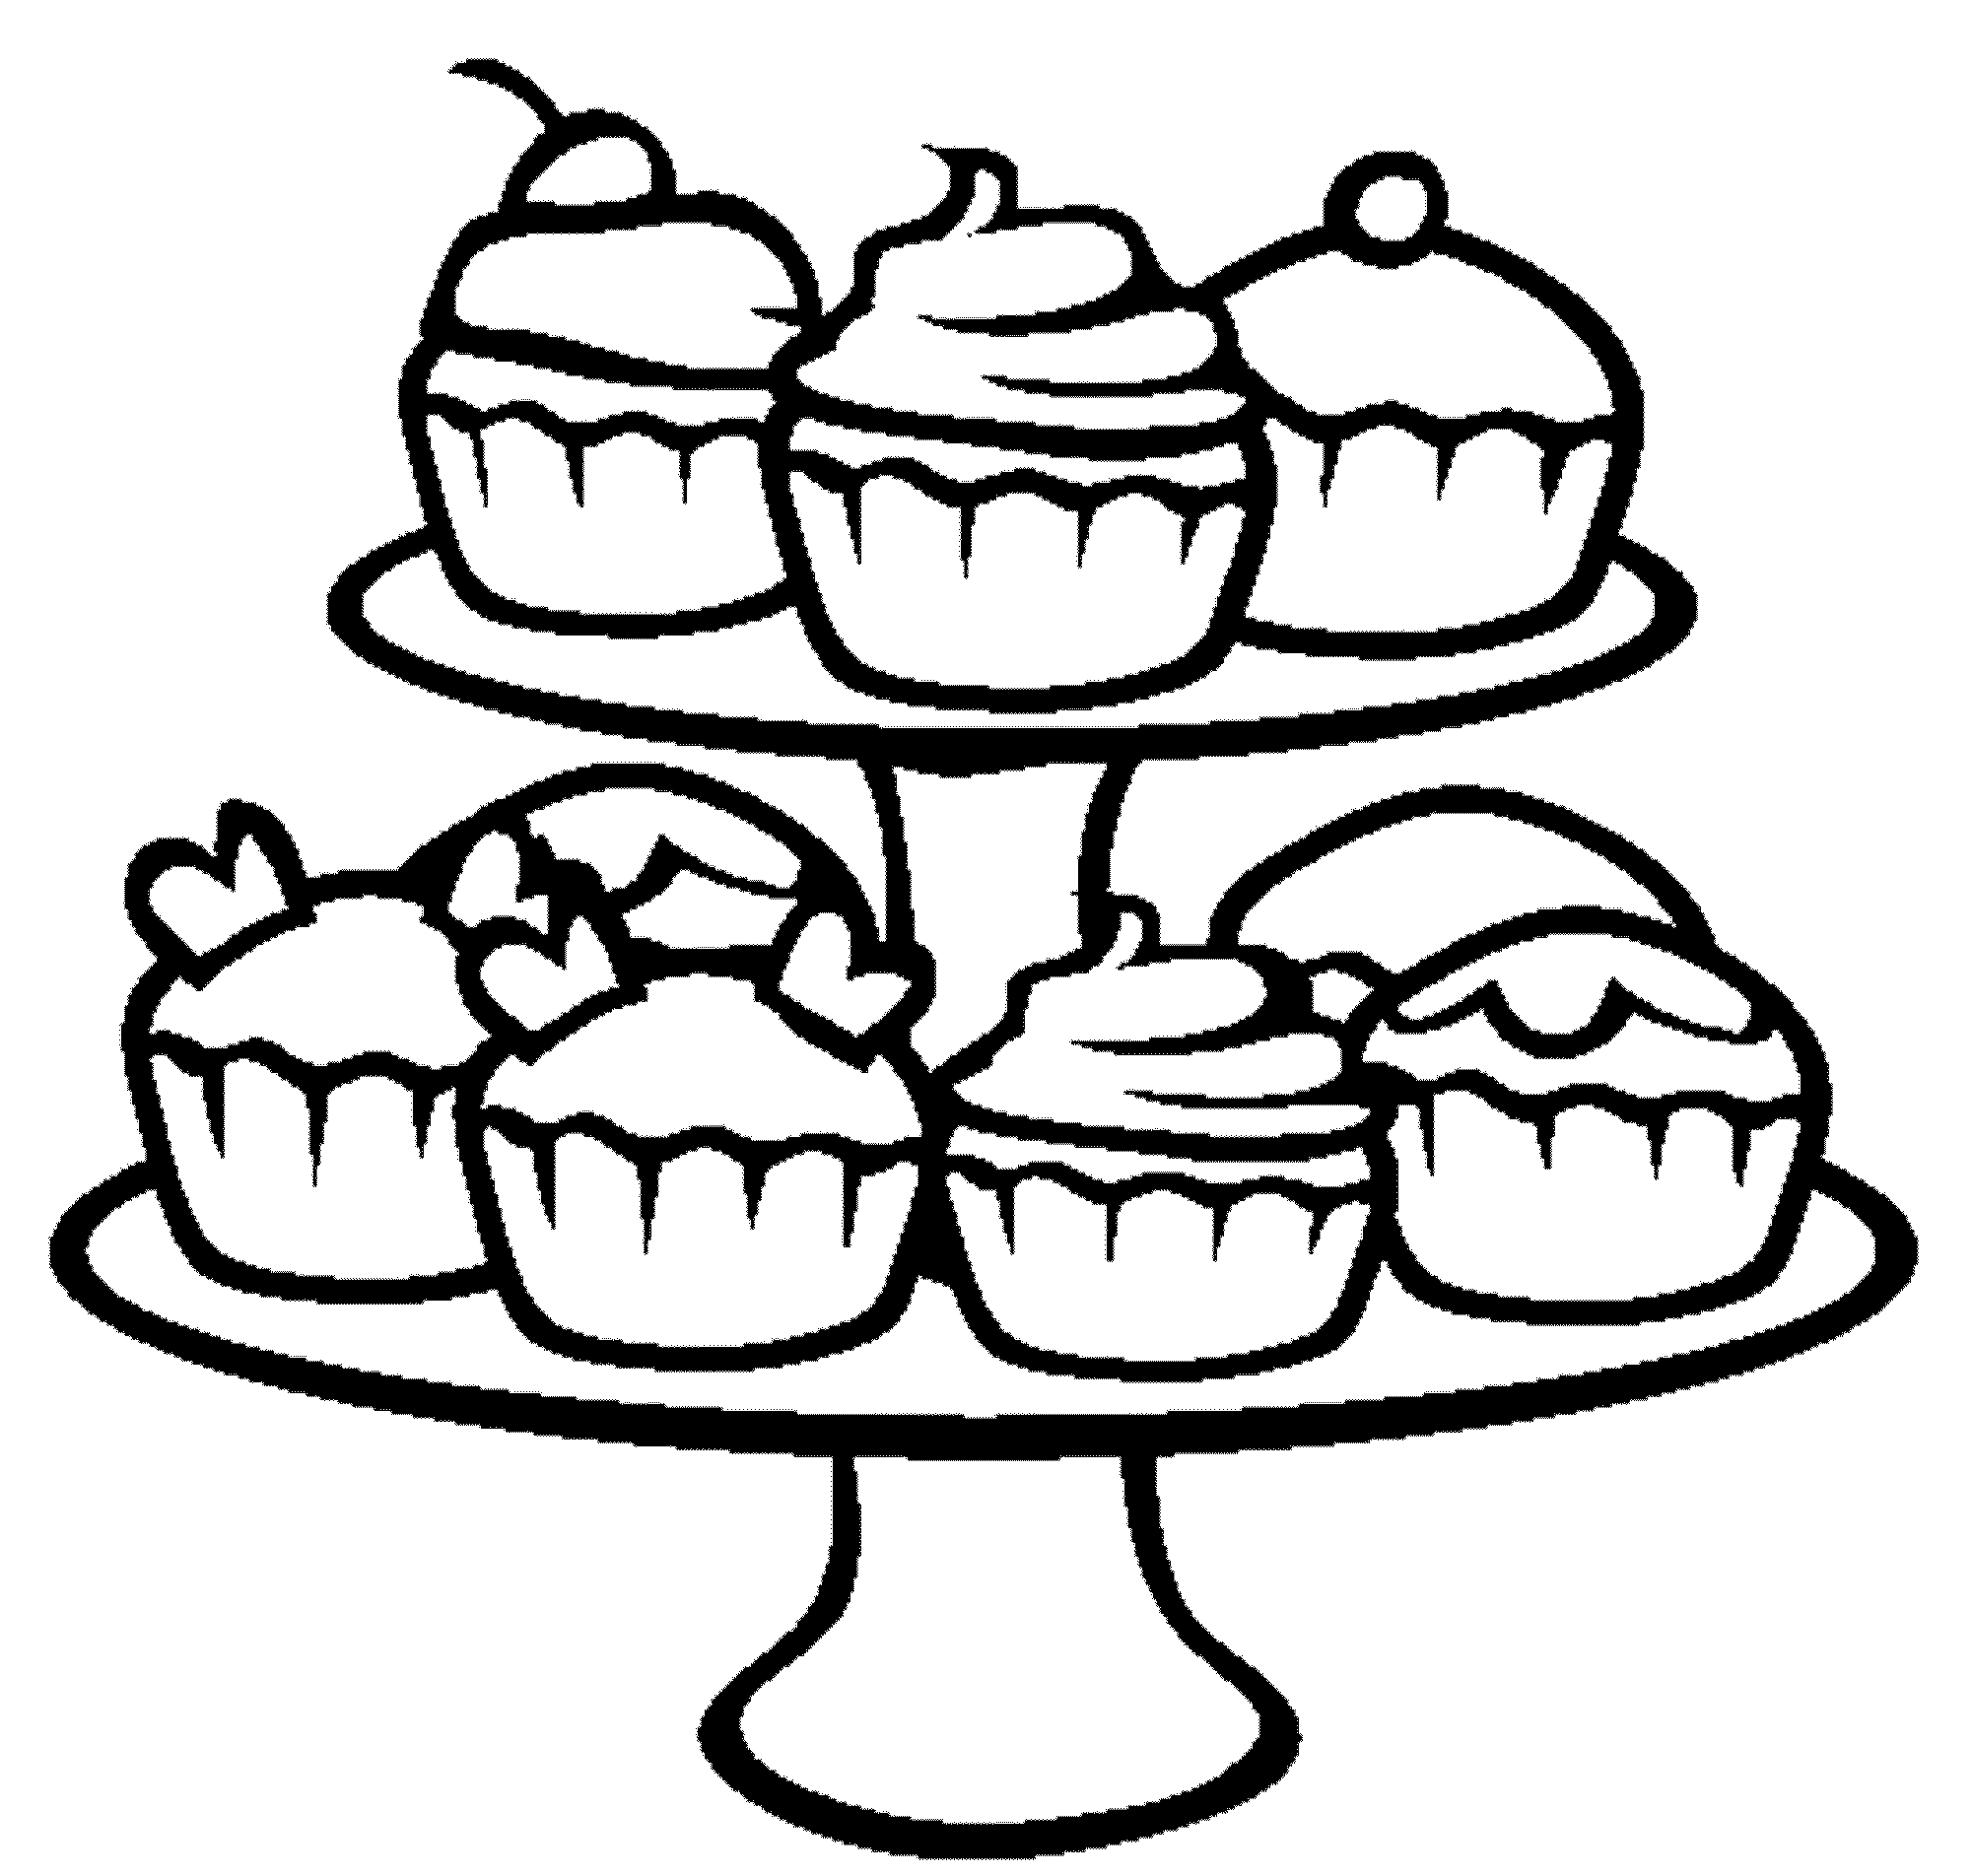 Stack of cupcakes clipart black and white svg transparent Cupcake Clipart Black And White | Free download best Cupcake ... svg transparent